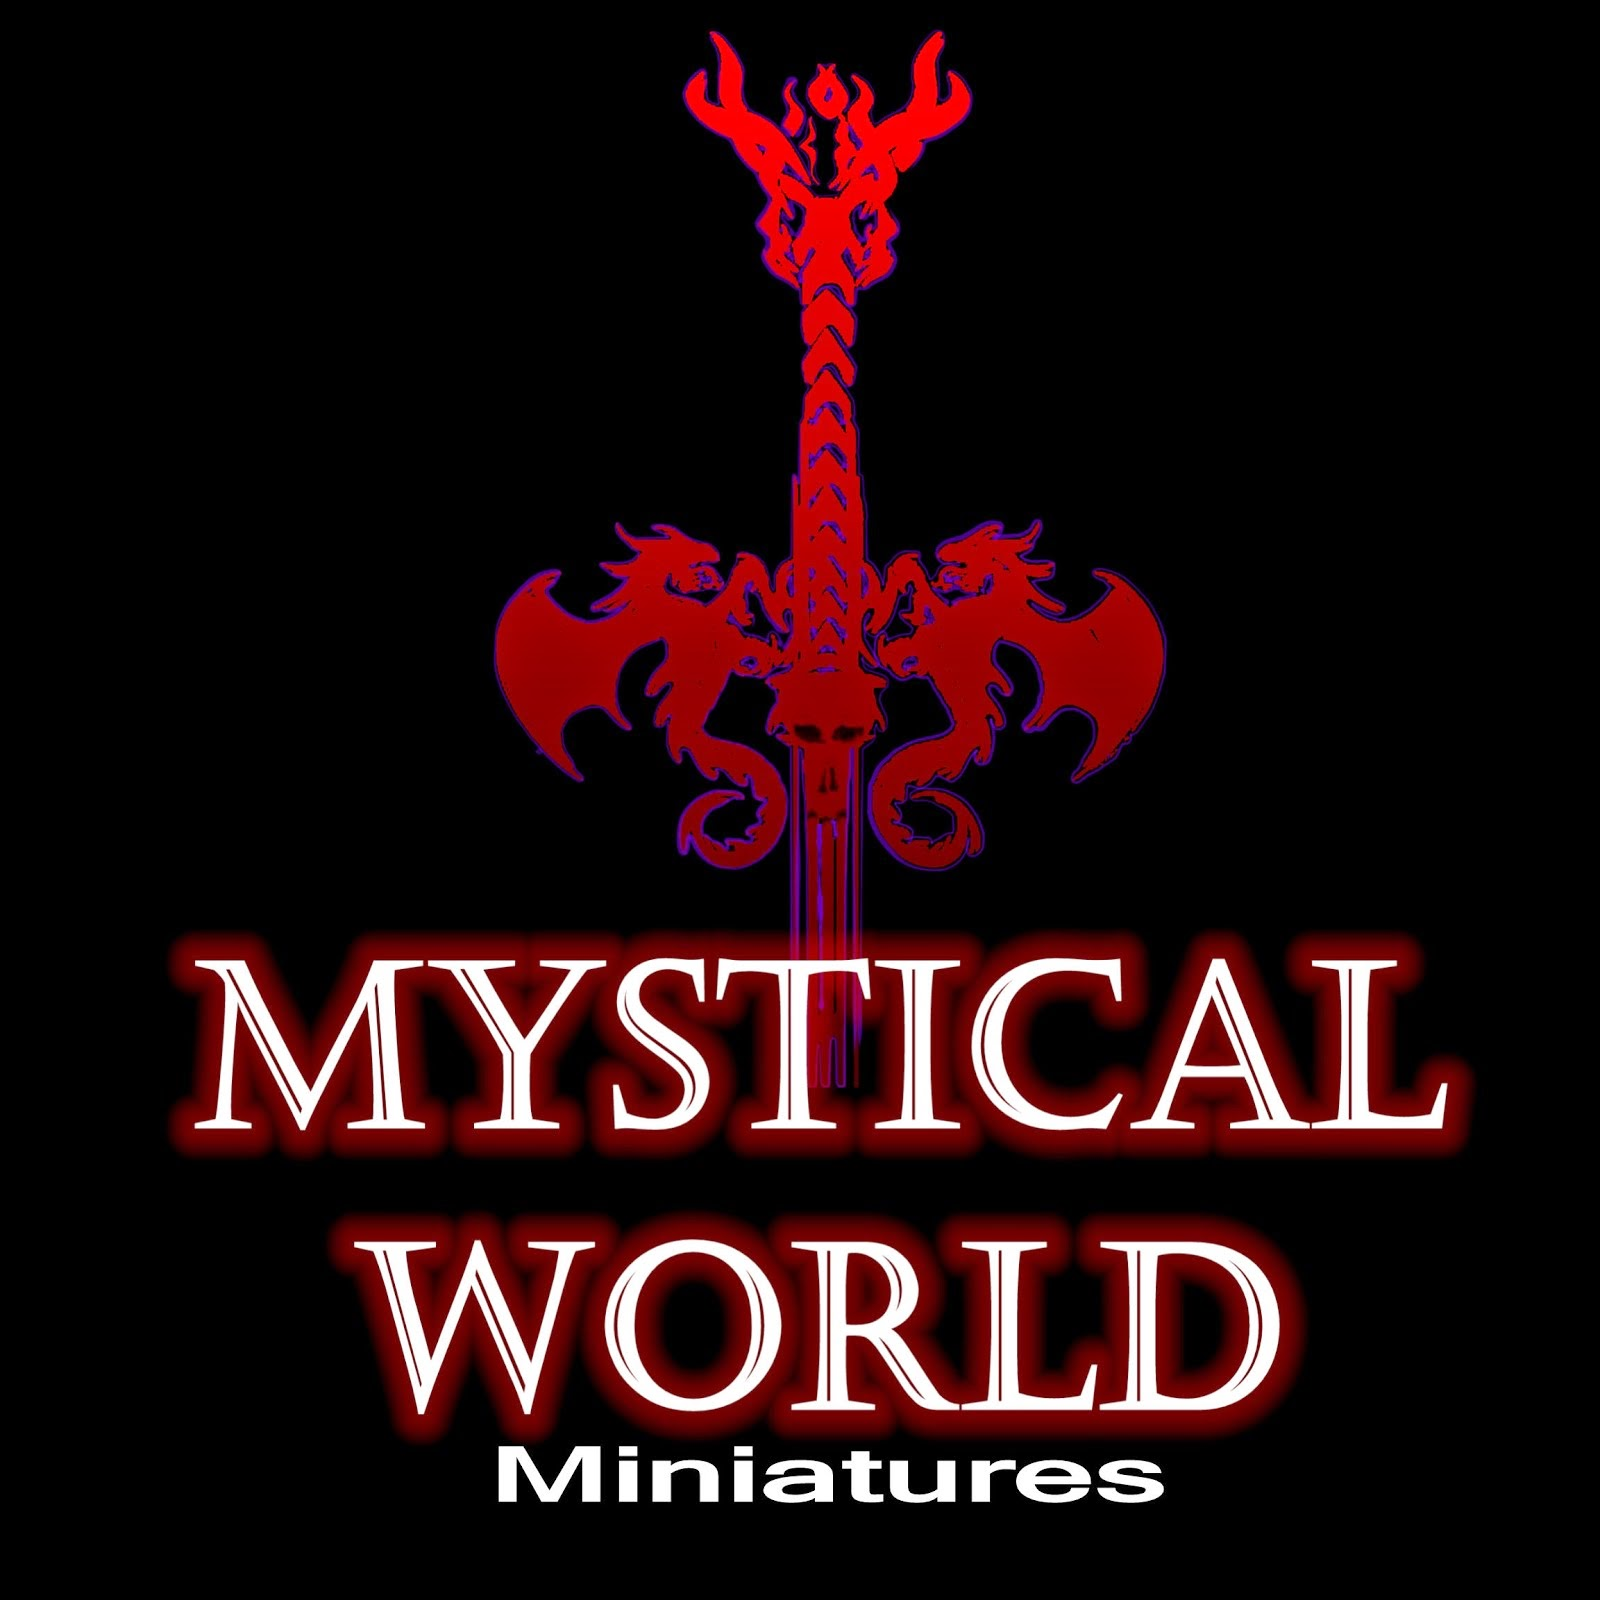 Sponsor:Mystical World